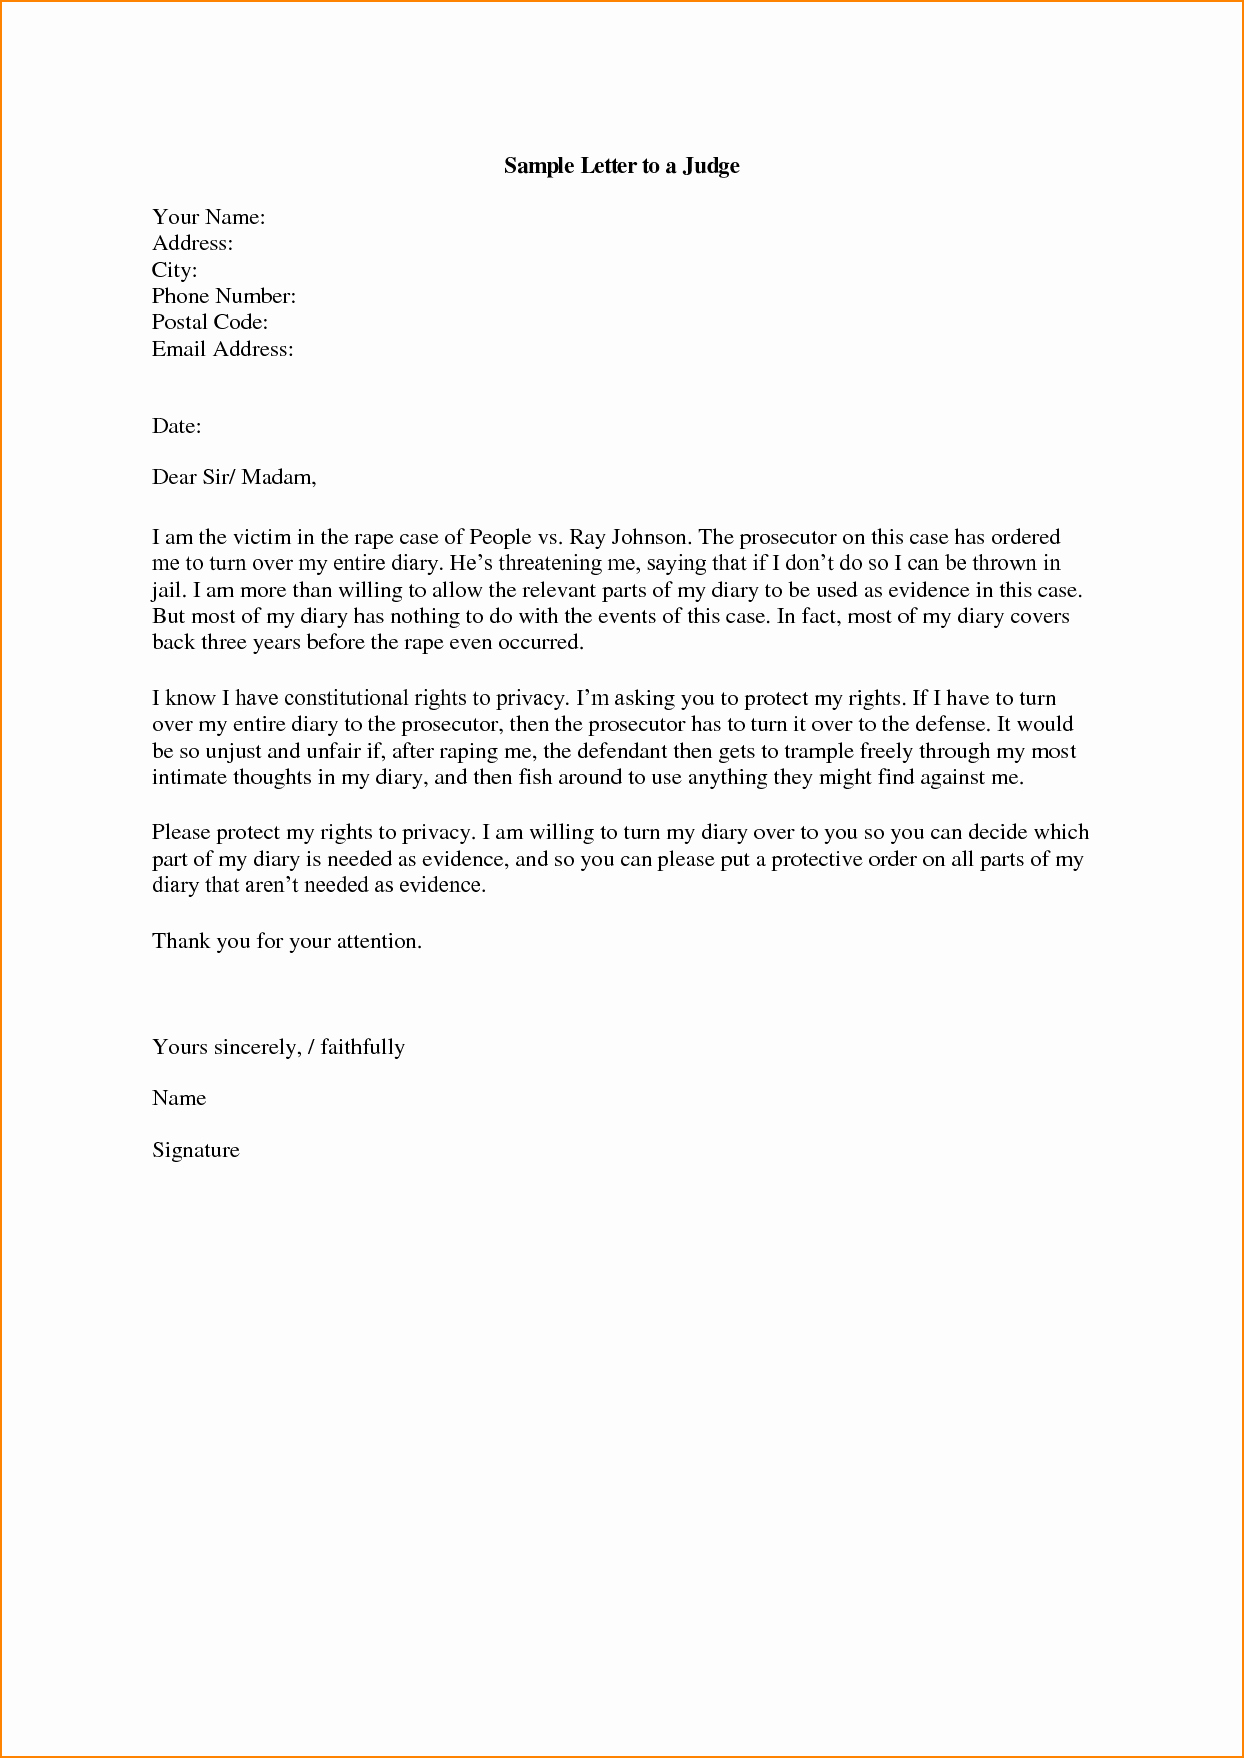 Letter to Judge format Inspirational How to Address A Letter to A Judge